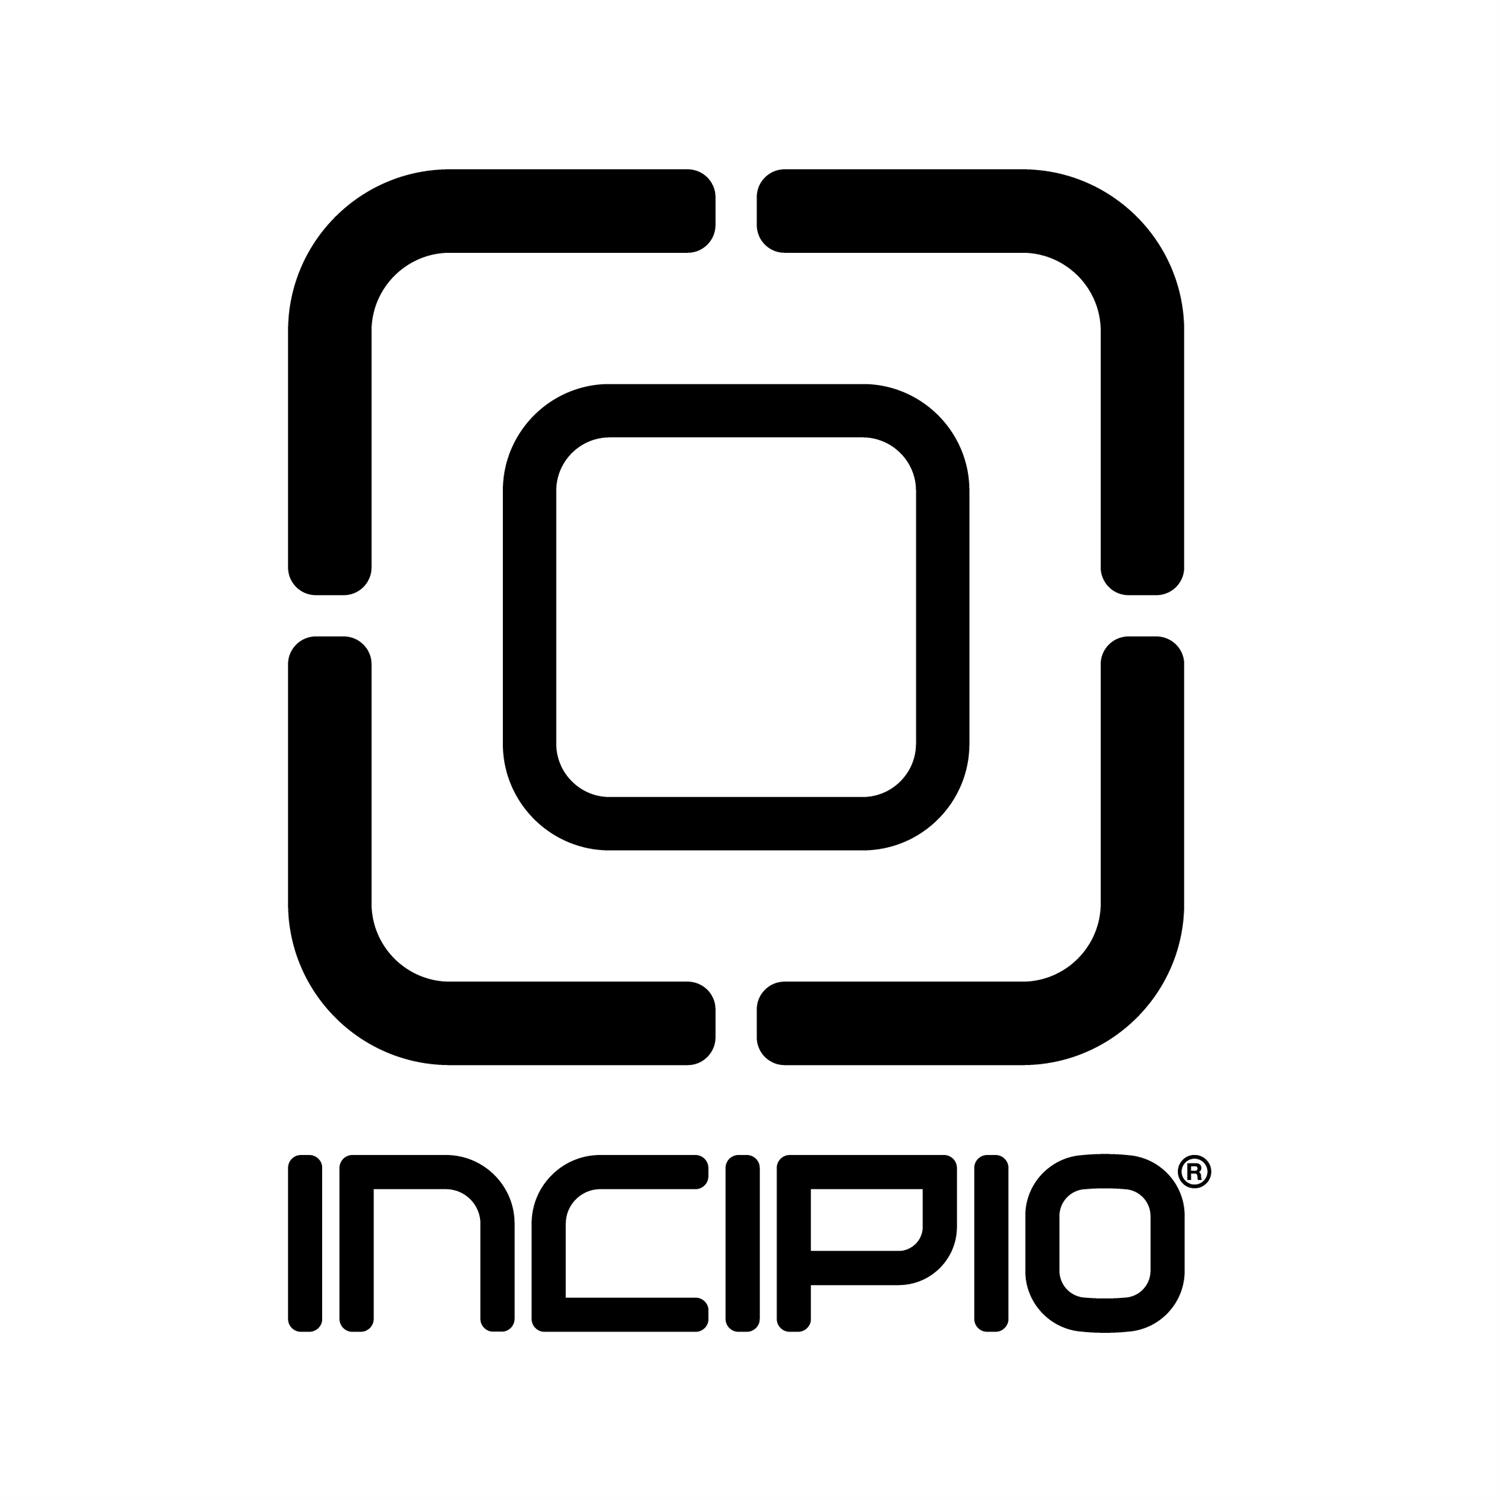 Incipio logo | Tradeline Egypt Apple